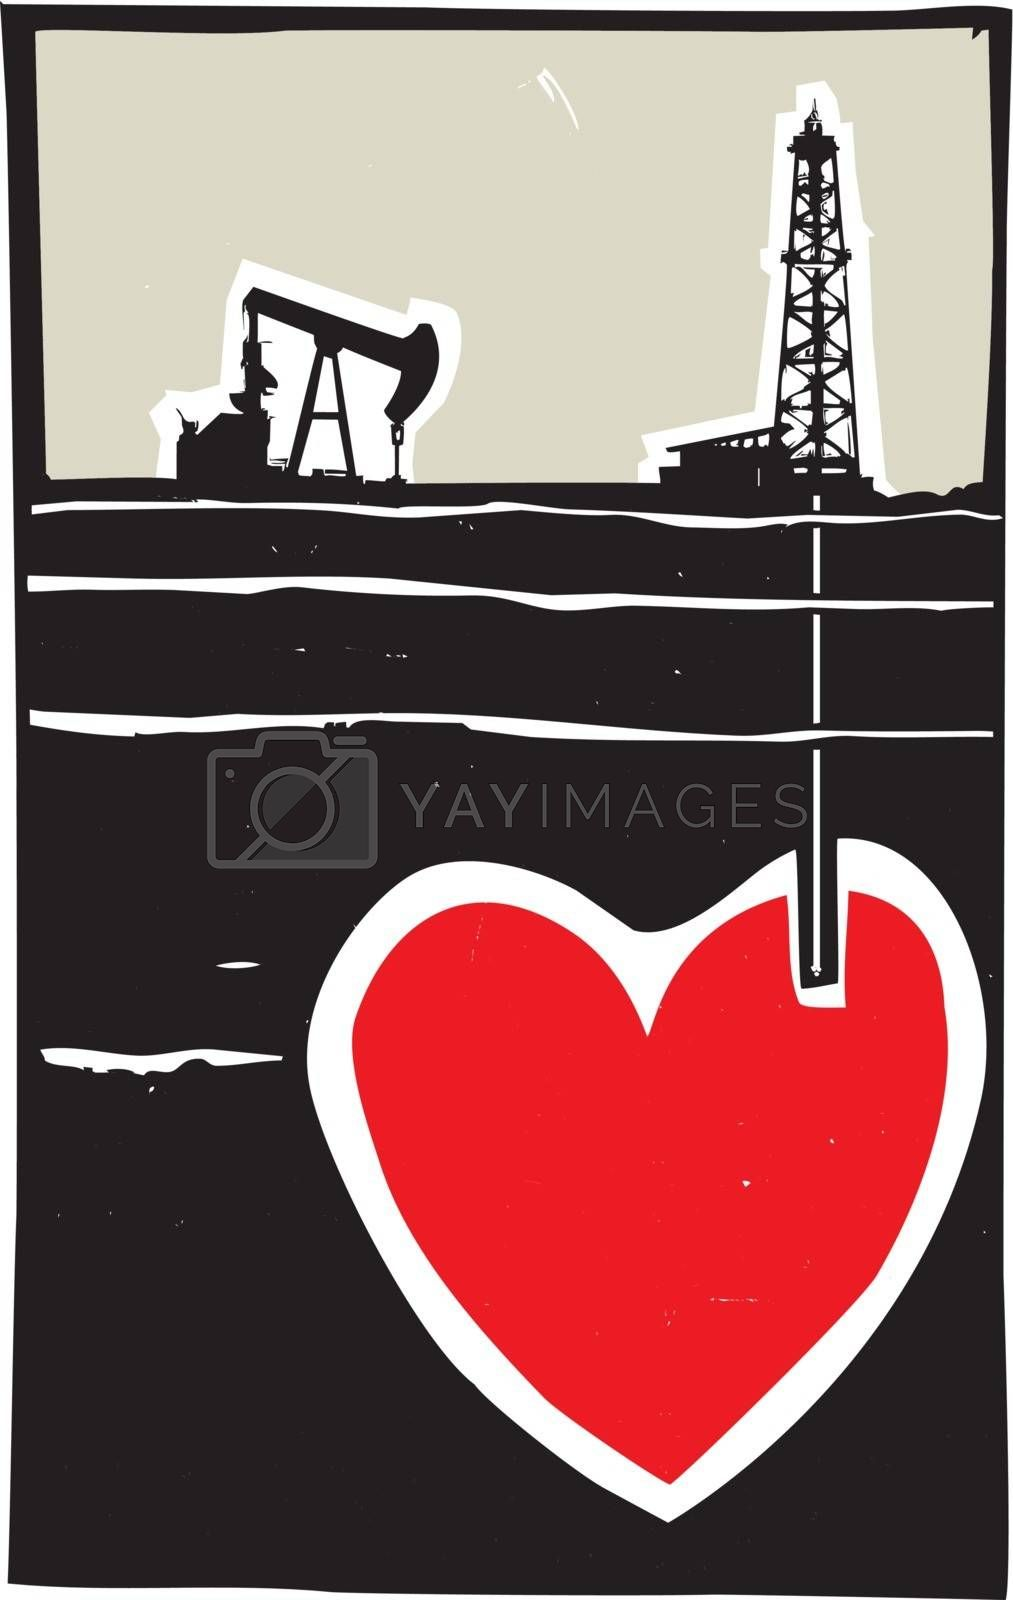 Woodcut style image Oil well drilling down into the earth and into a Heart.